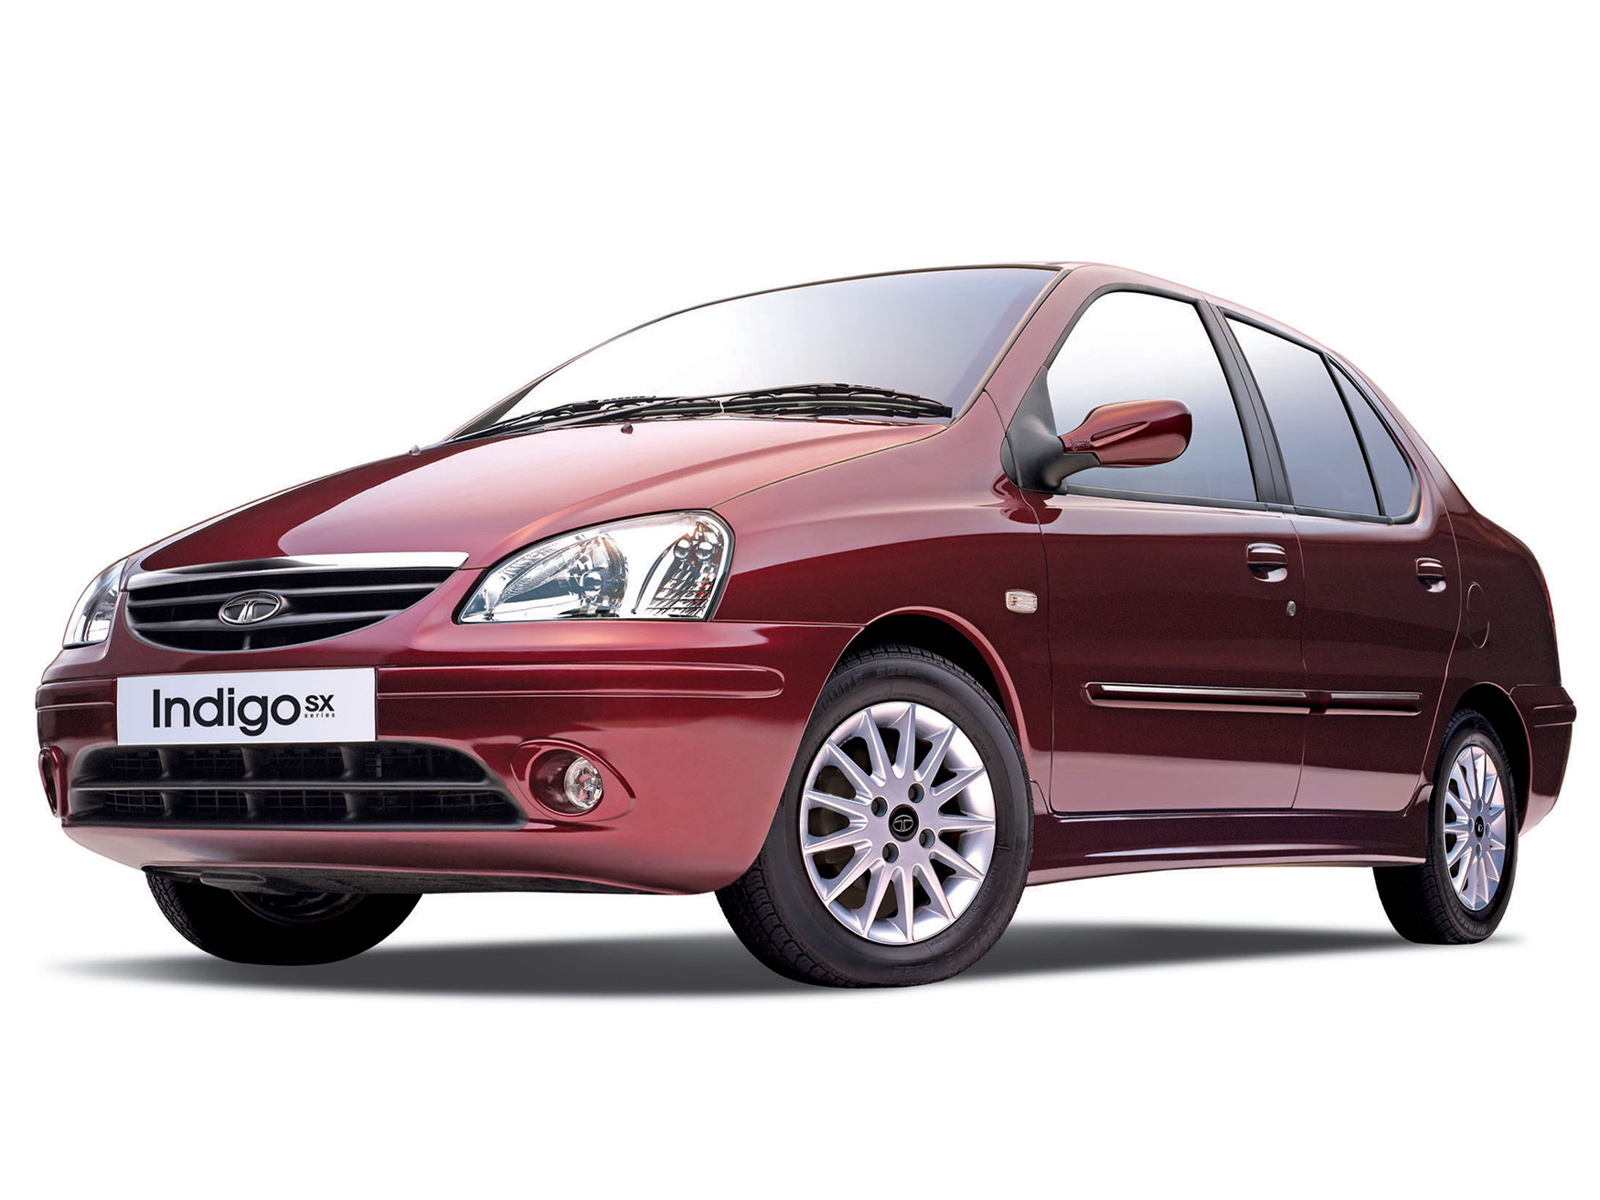 Tata indigo photo - 2